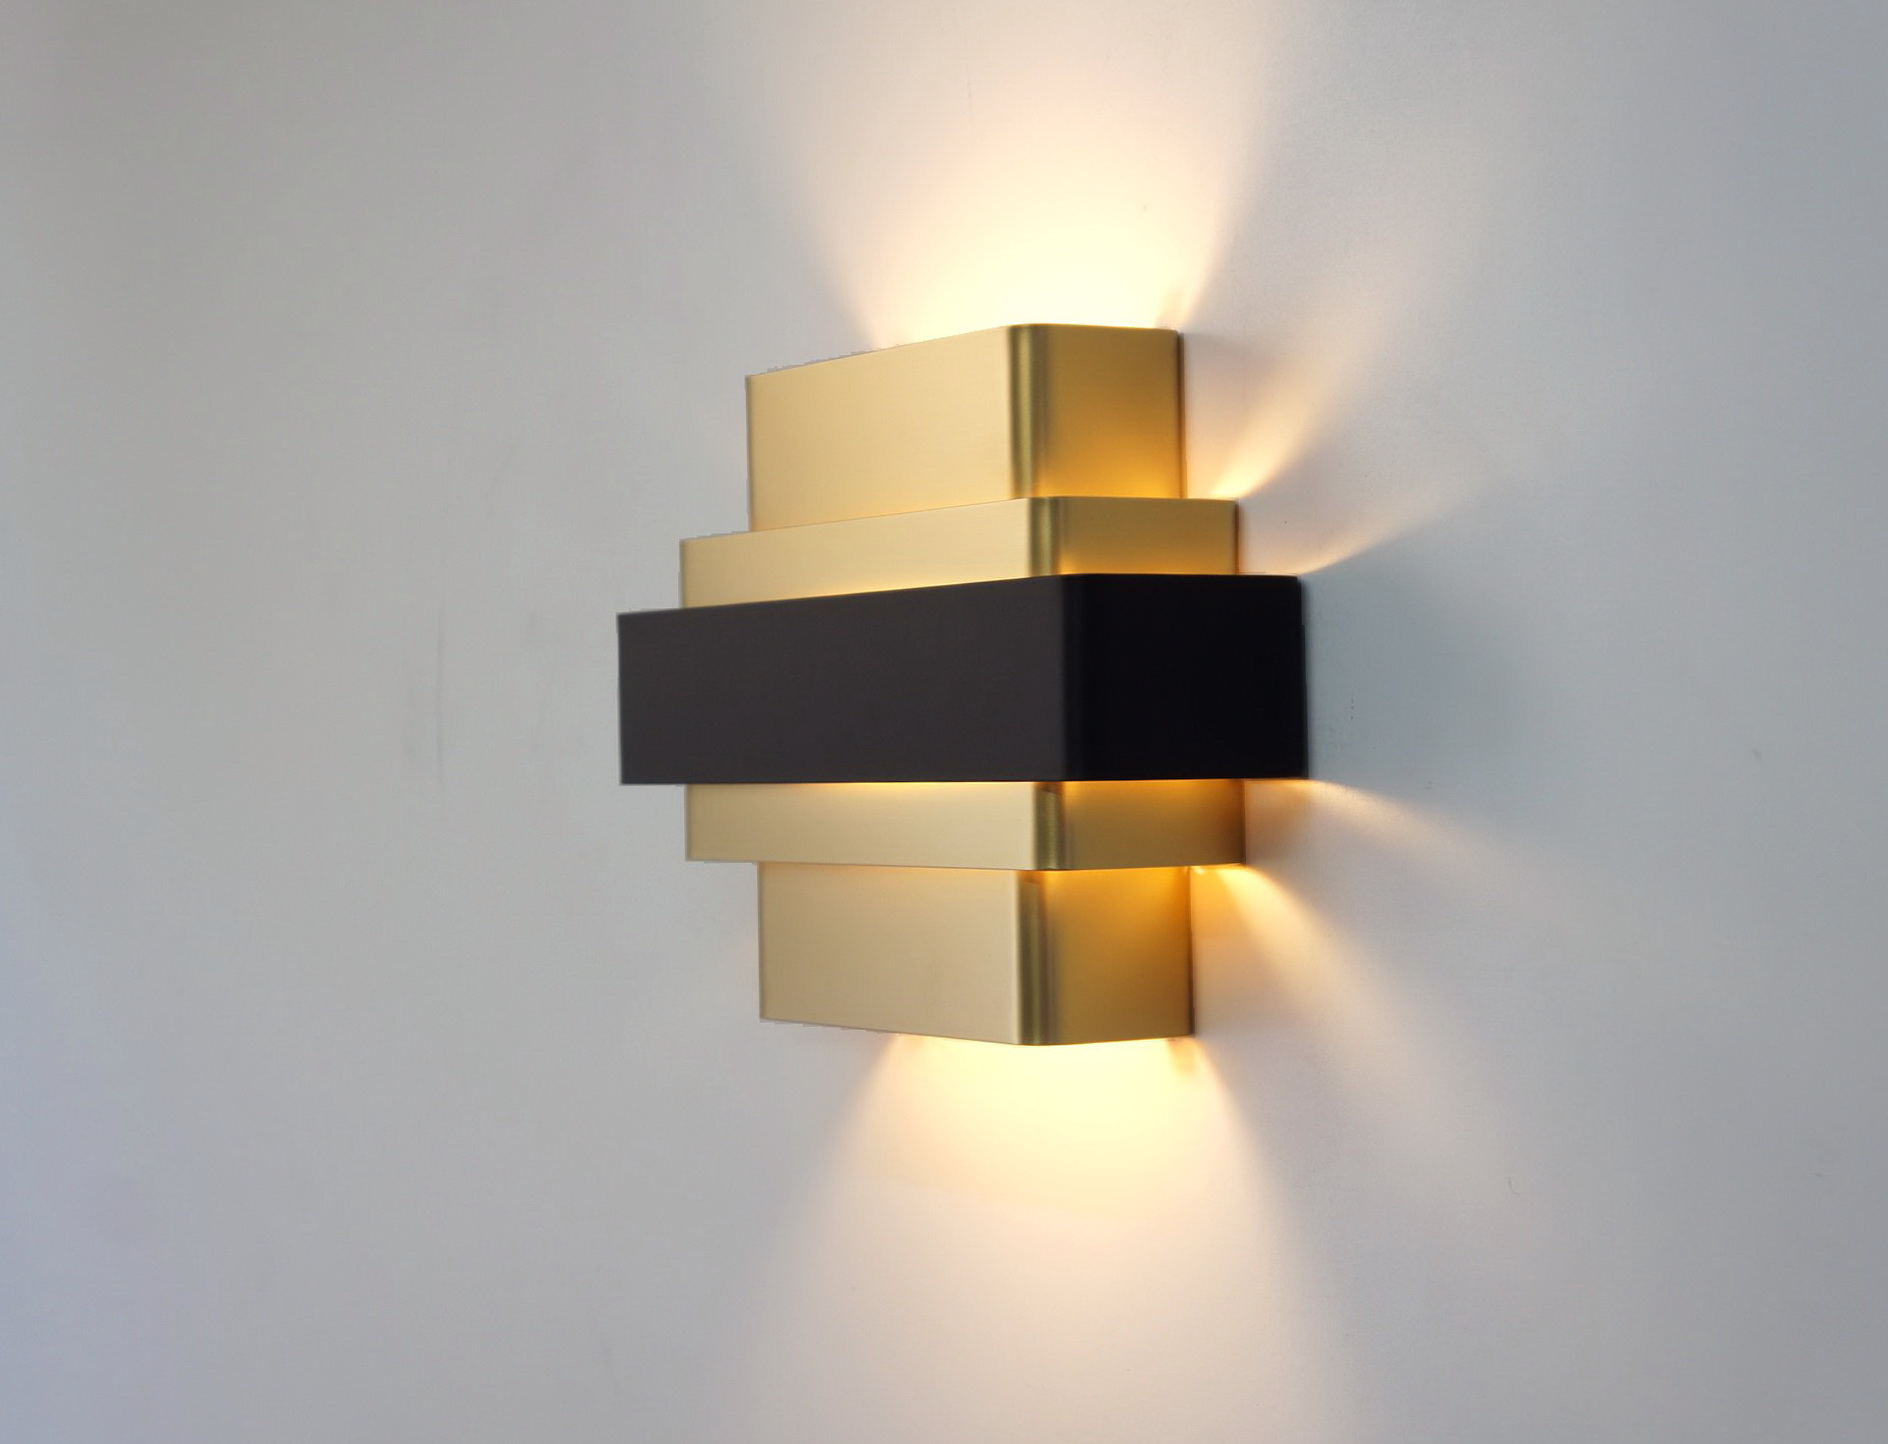 & Gold wall lamps to create a sophisticated decoration